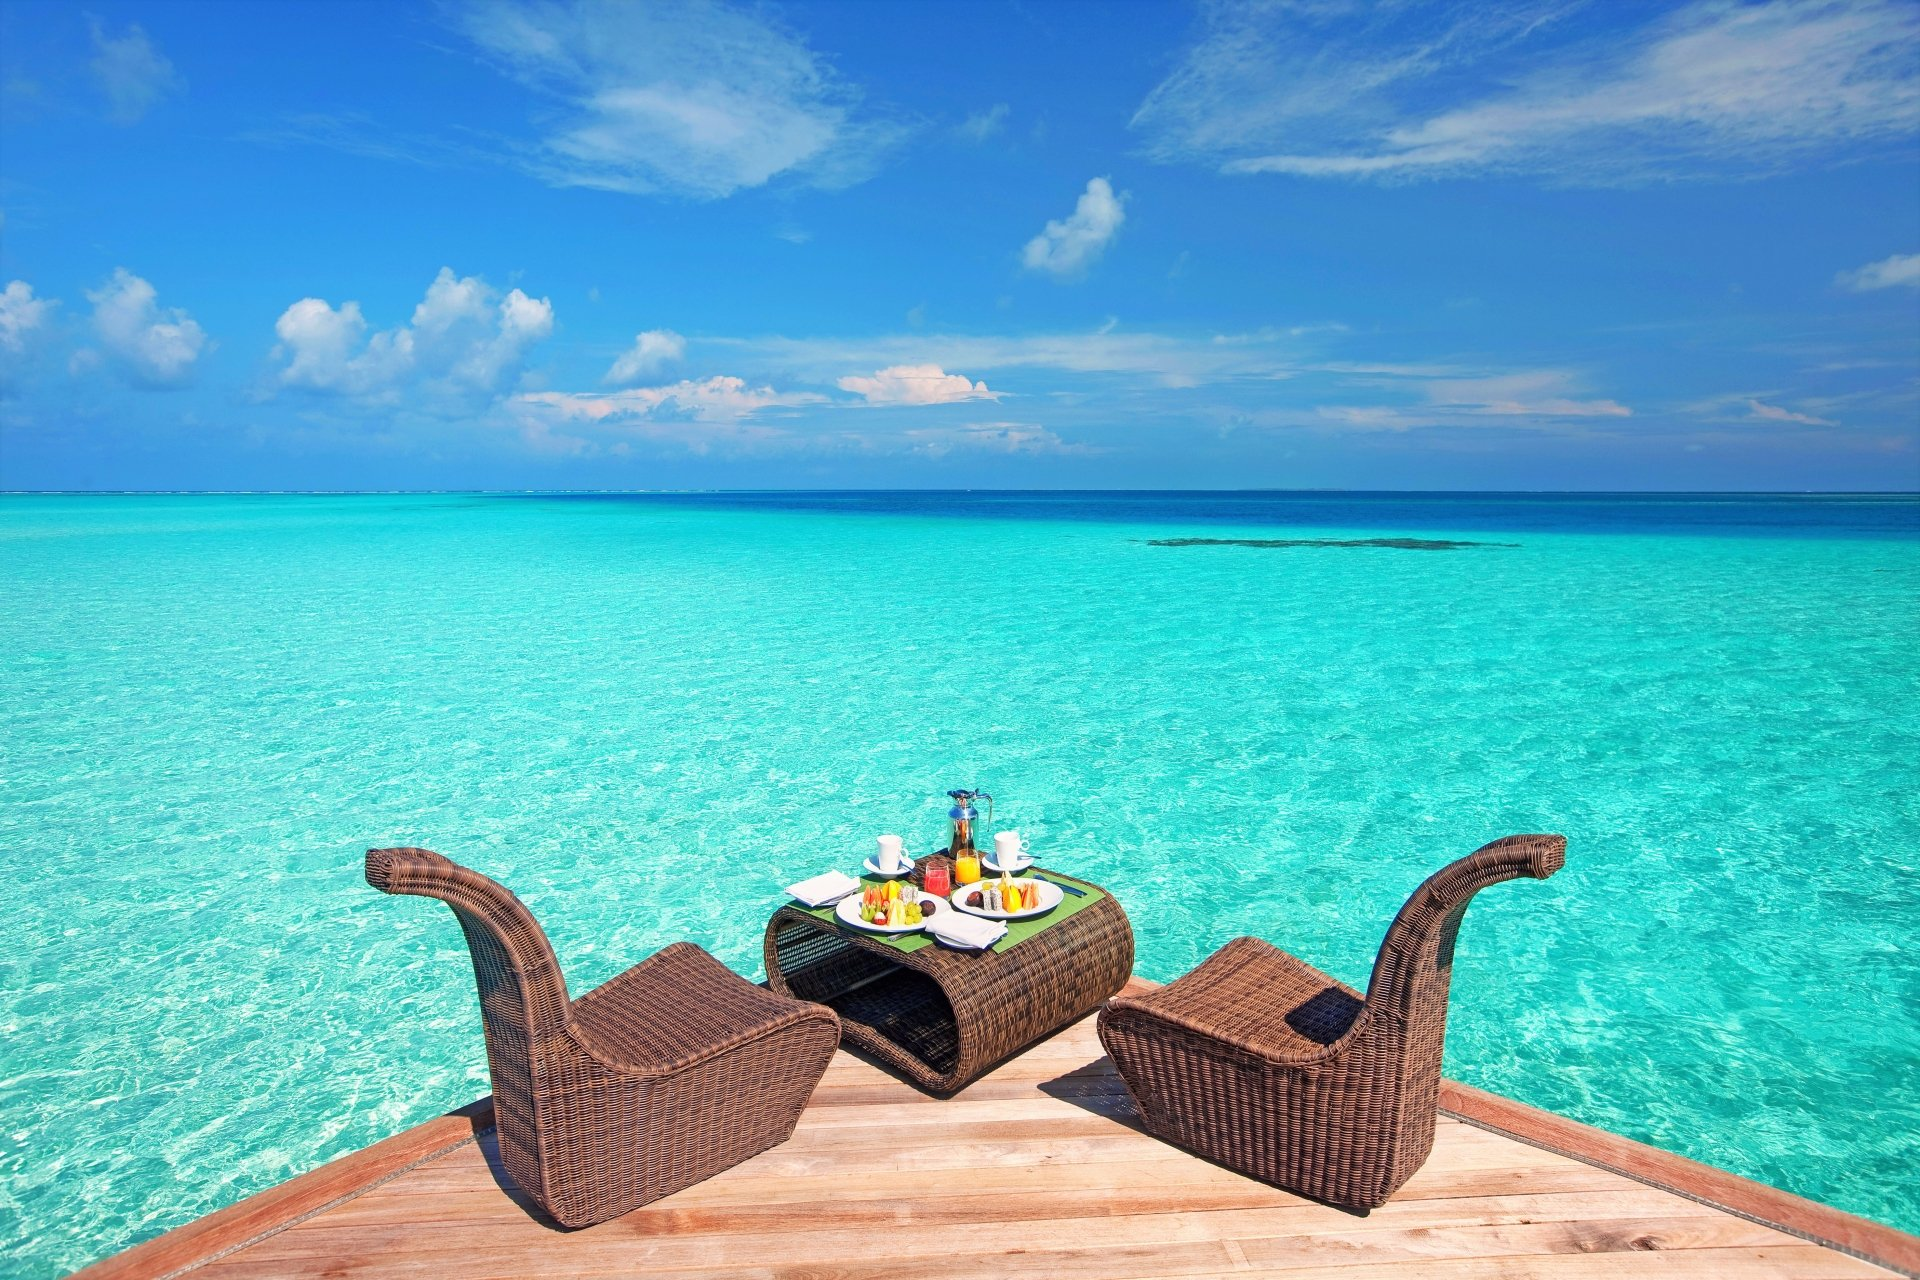 Man Made - Resort  Tropical Ocean Sea Turquoise Chair Table Lunch Horizon Wallpaper